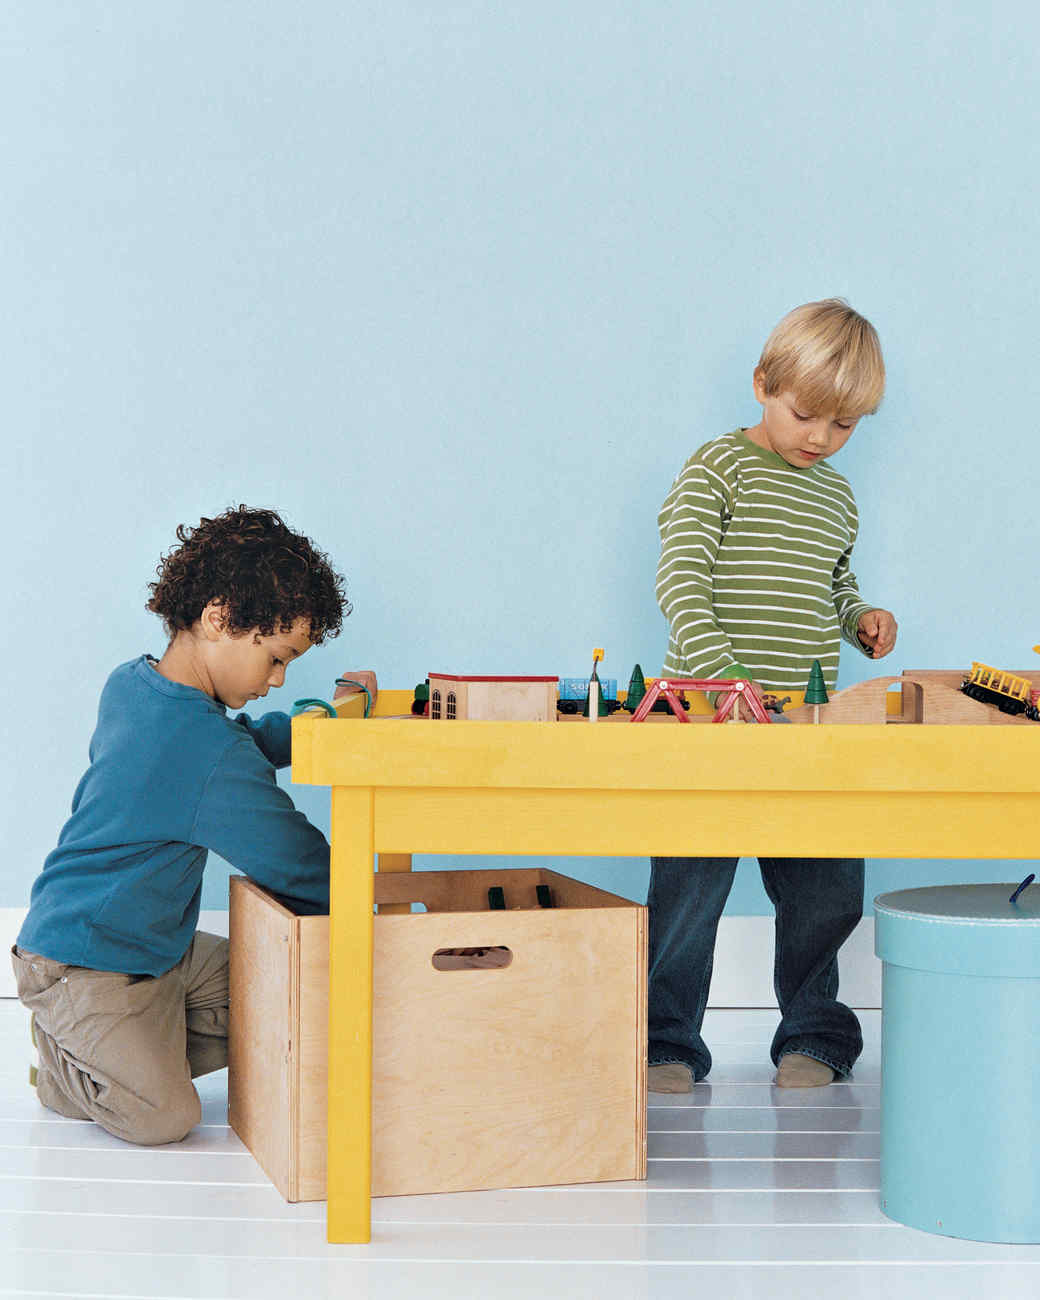 Incroyable Under Table Bins Make Cleanup Easy. We Chose Large Boxes, But Several Small  Ones Would Serve As Well. If You Label The Containers, Kids Can Quickly  Find ...